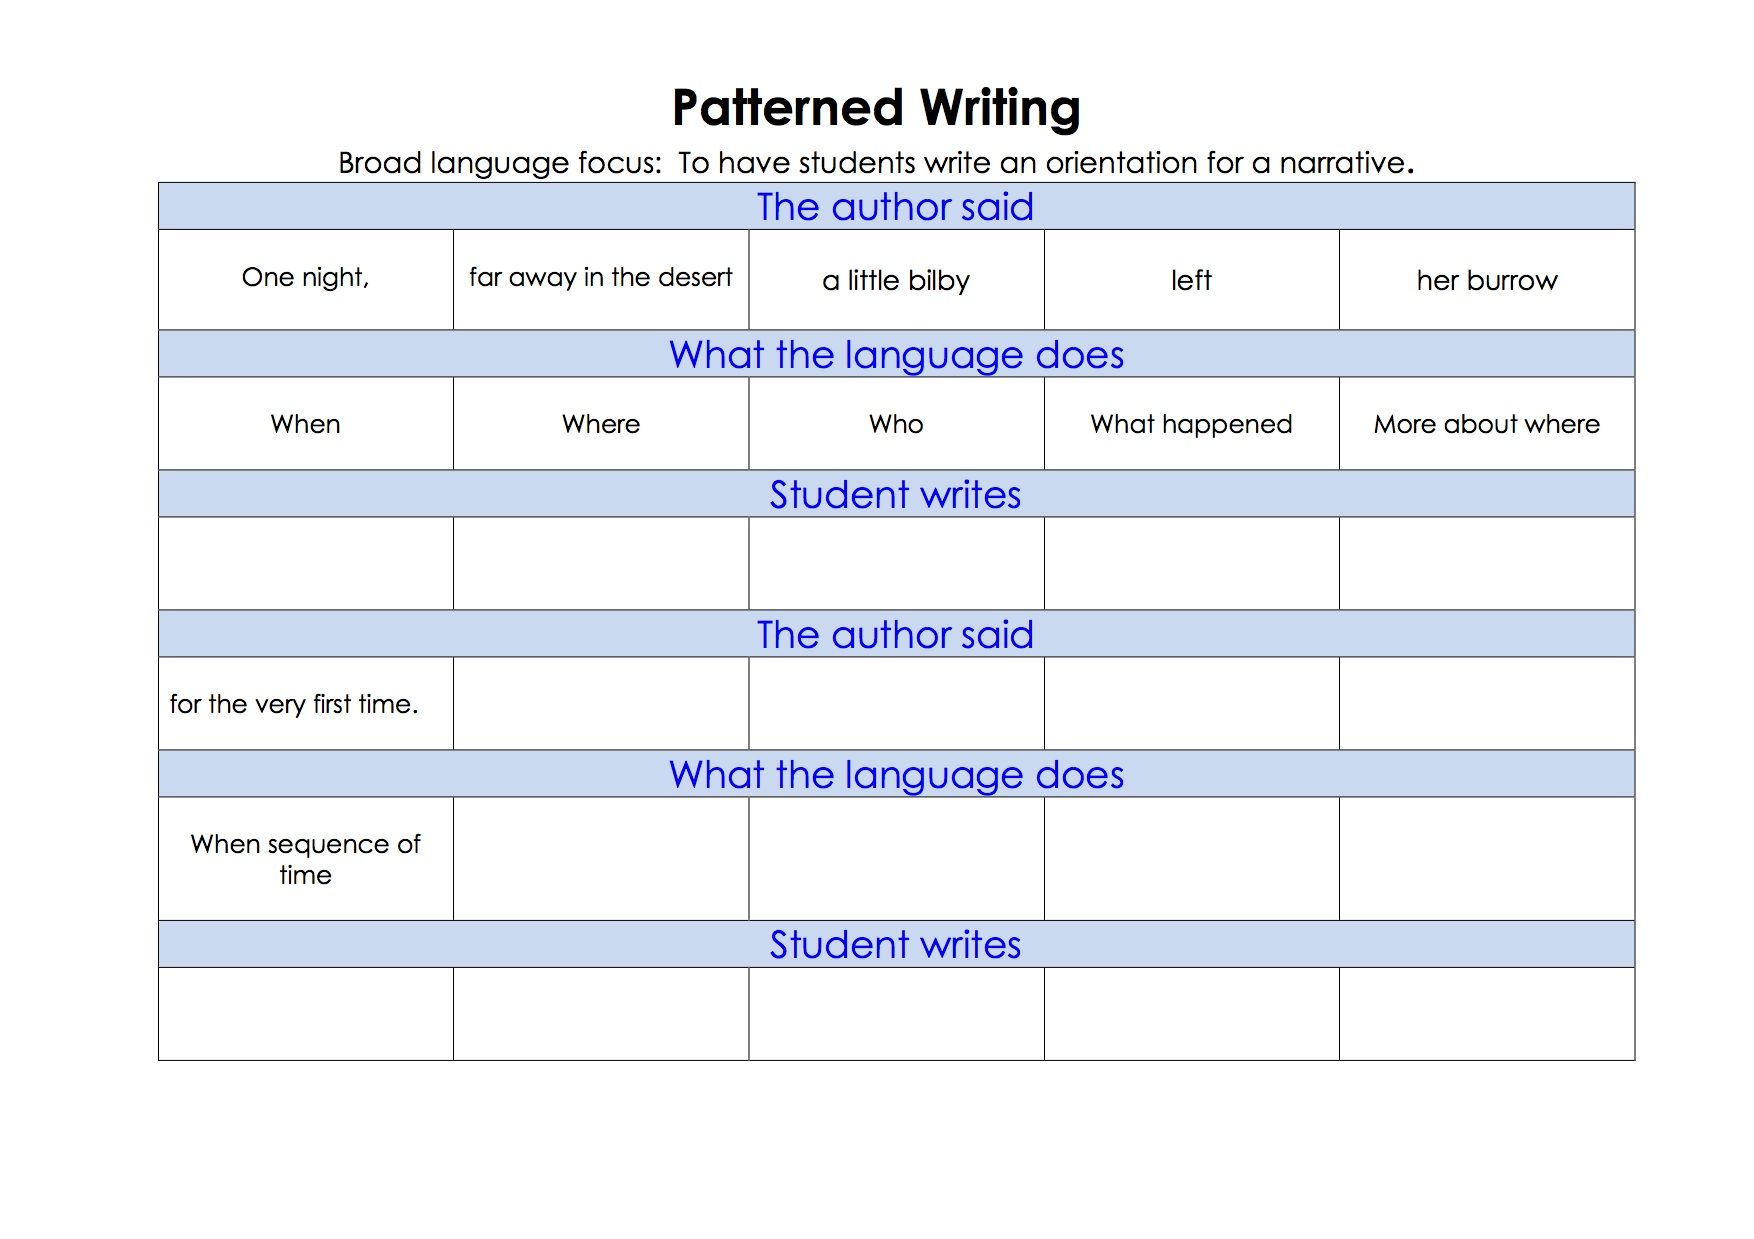 Patterned Writing From Accelerated Literacy Unit For Bilby Moon